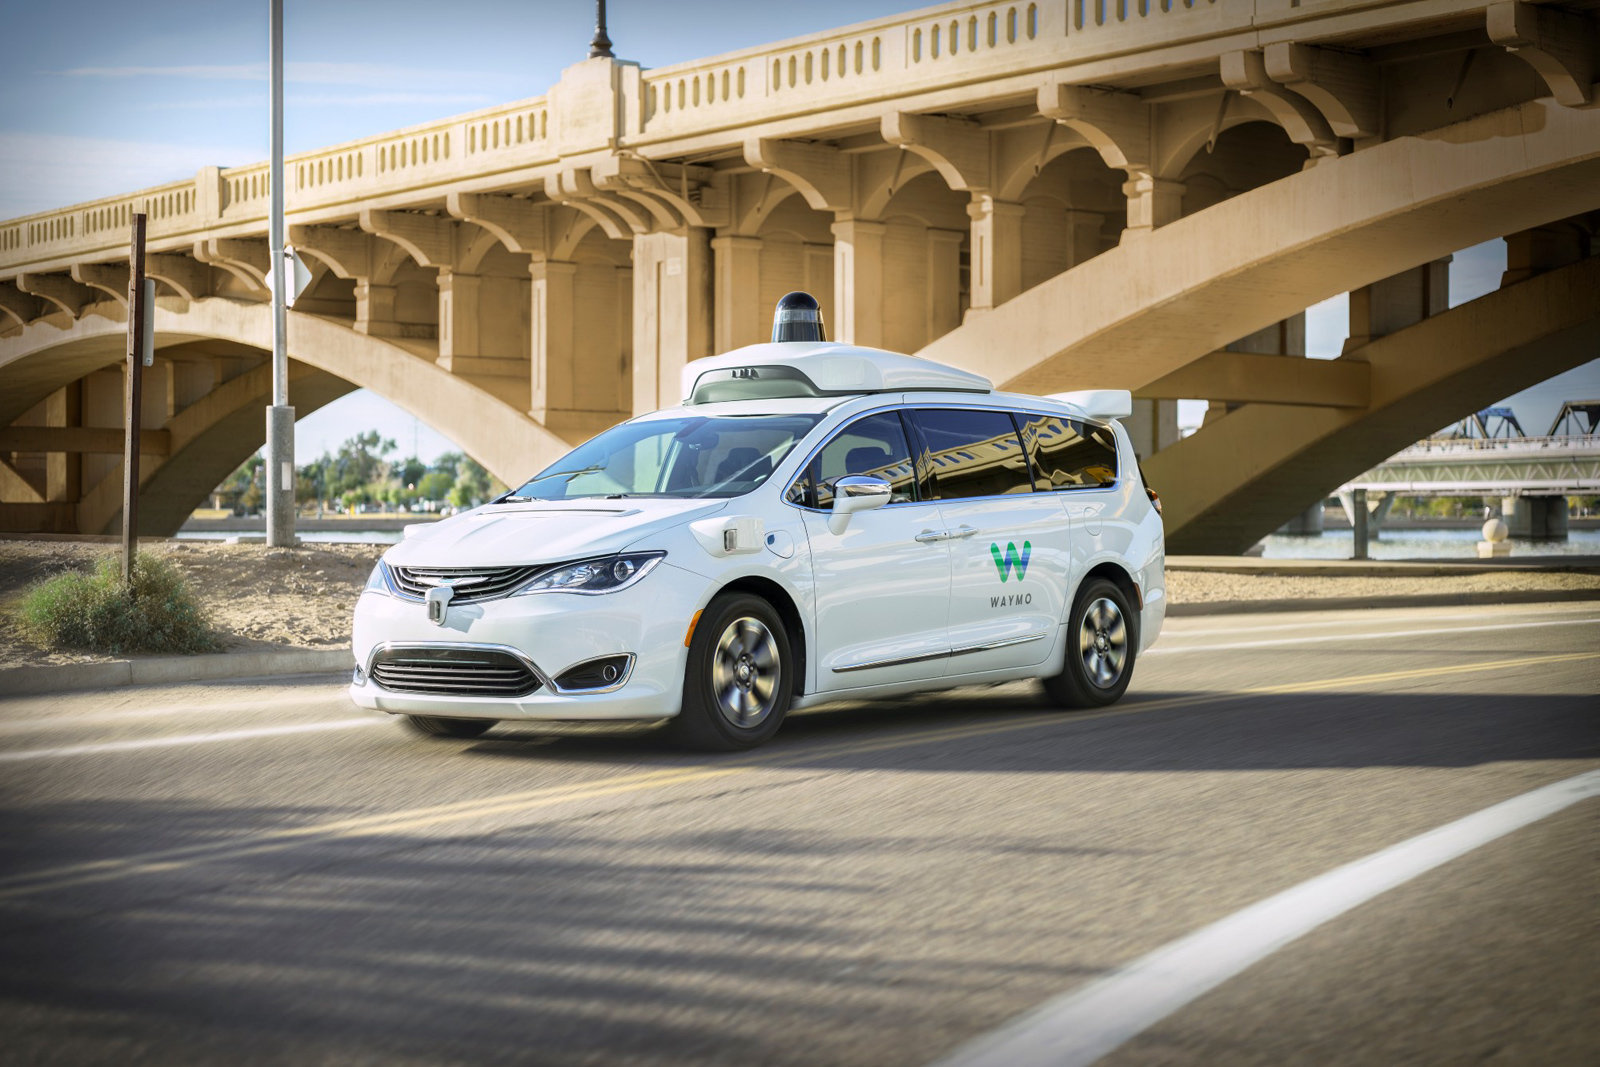 Waymo's robotic taxi service is only partially autonomous